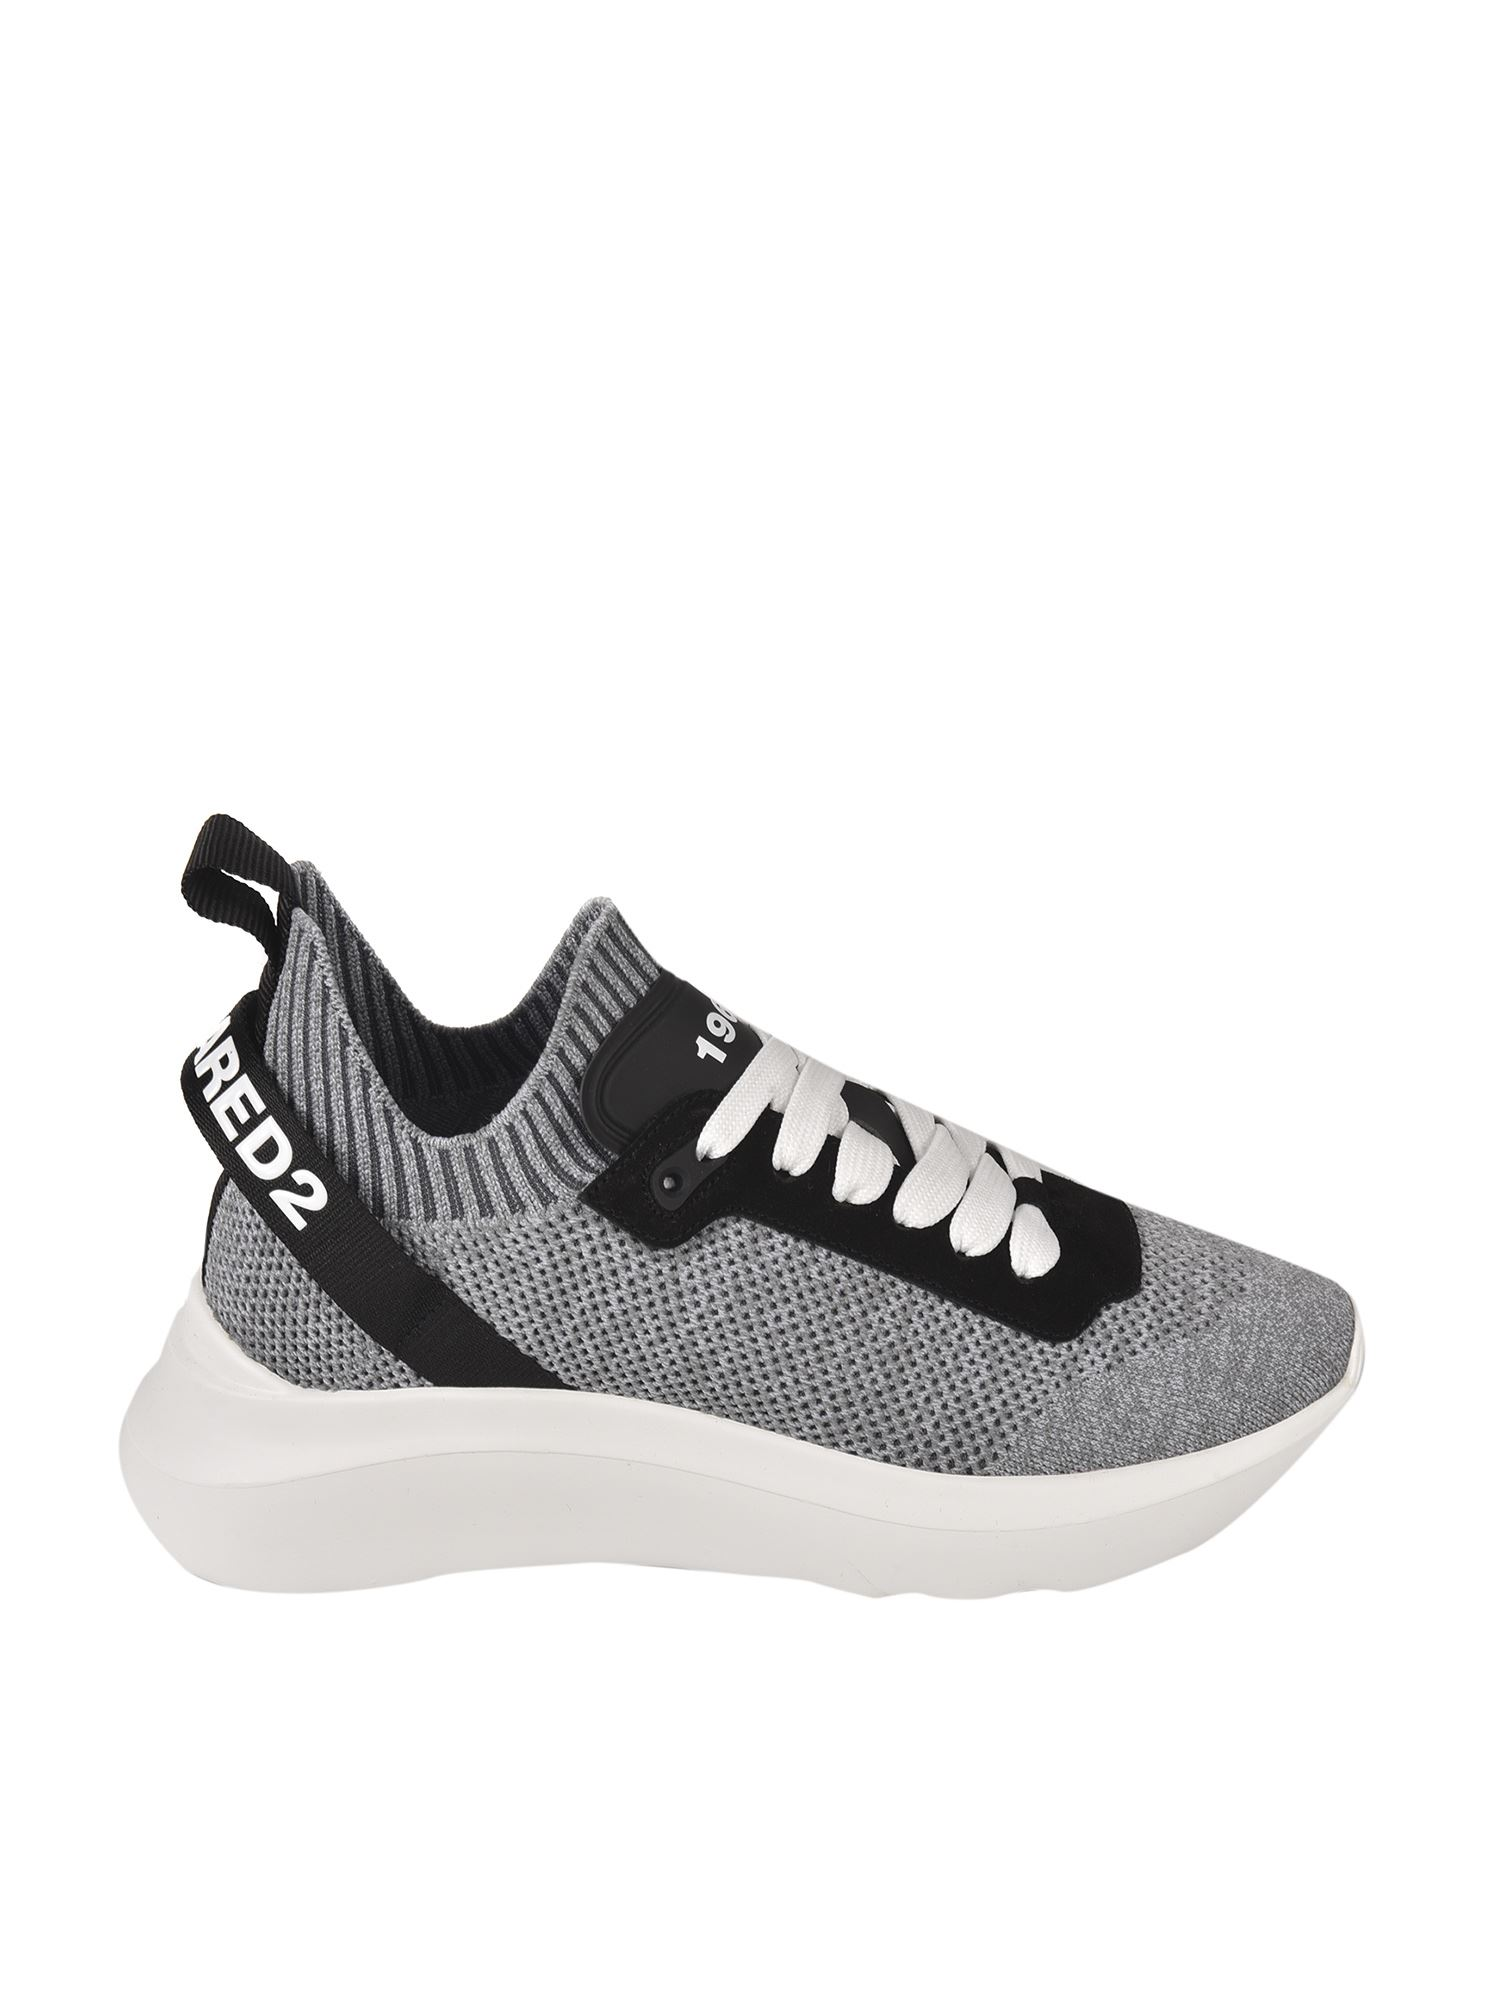 Dsquared2 SPEEDSTER SNEAKERS IN GRAY